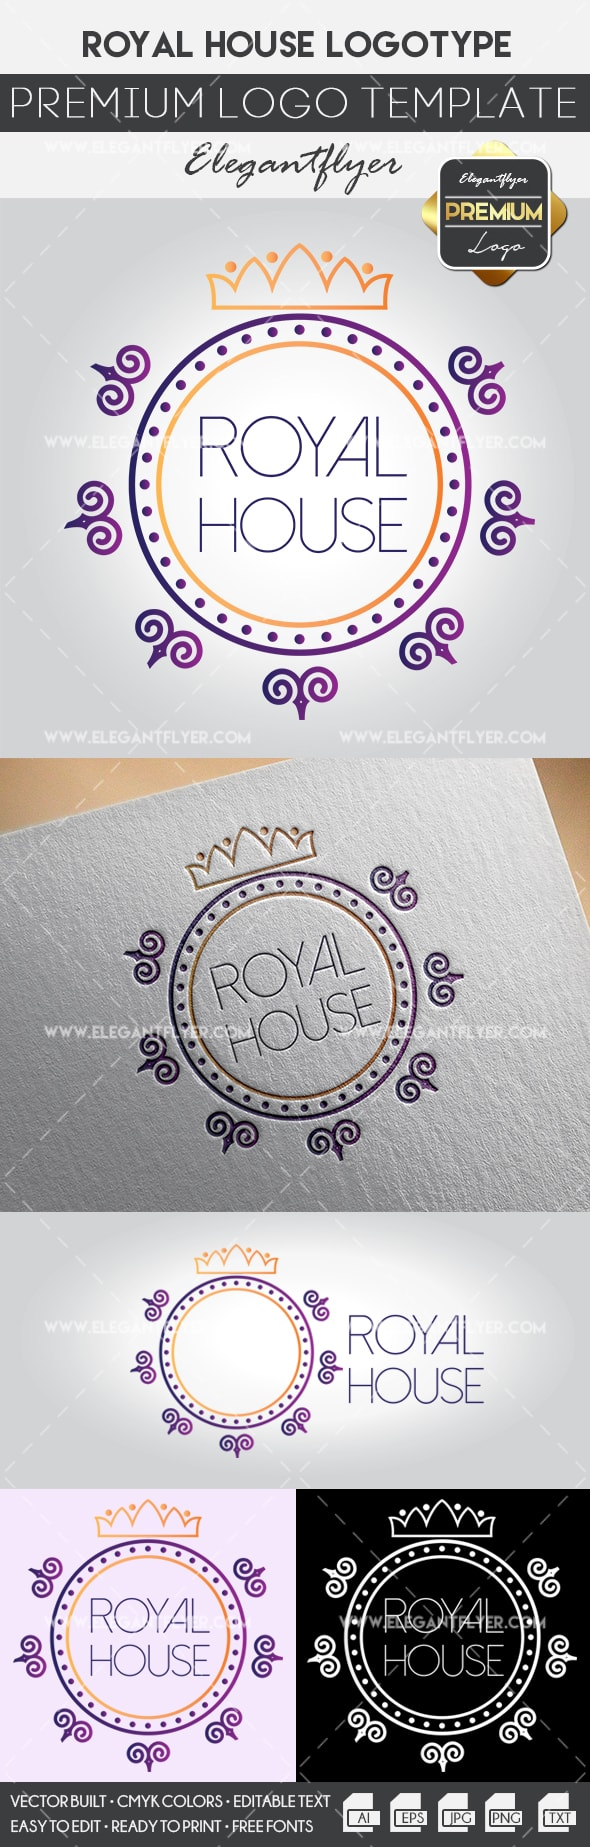 Royal House – Premium Logo Template